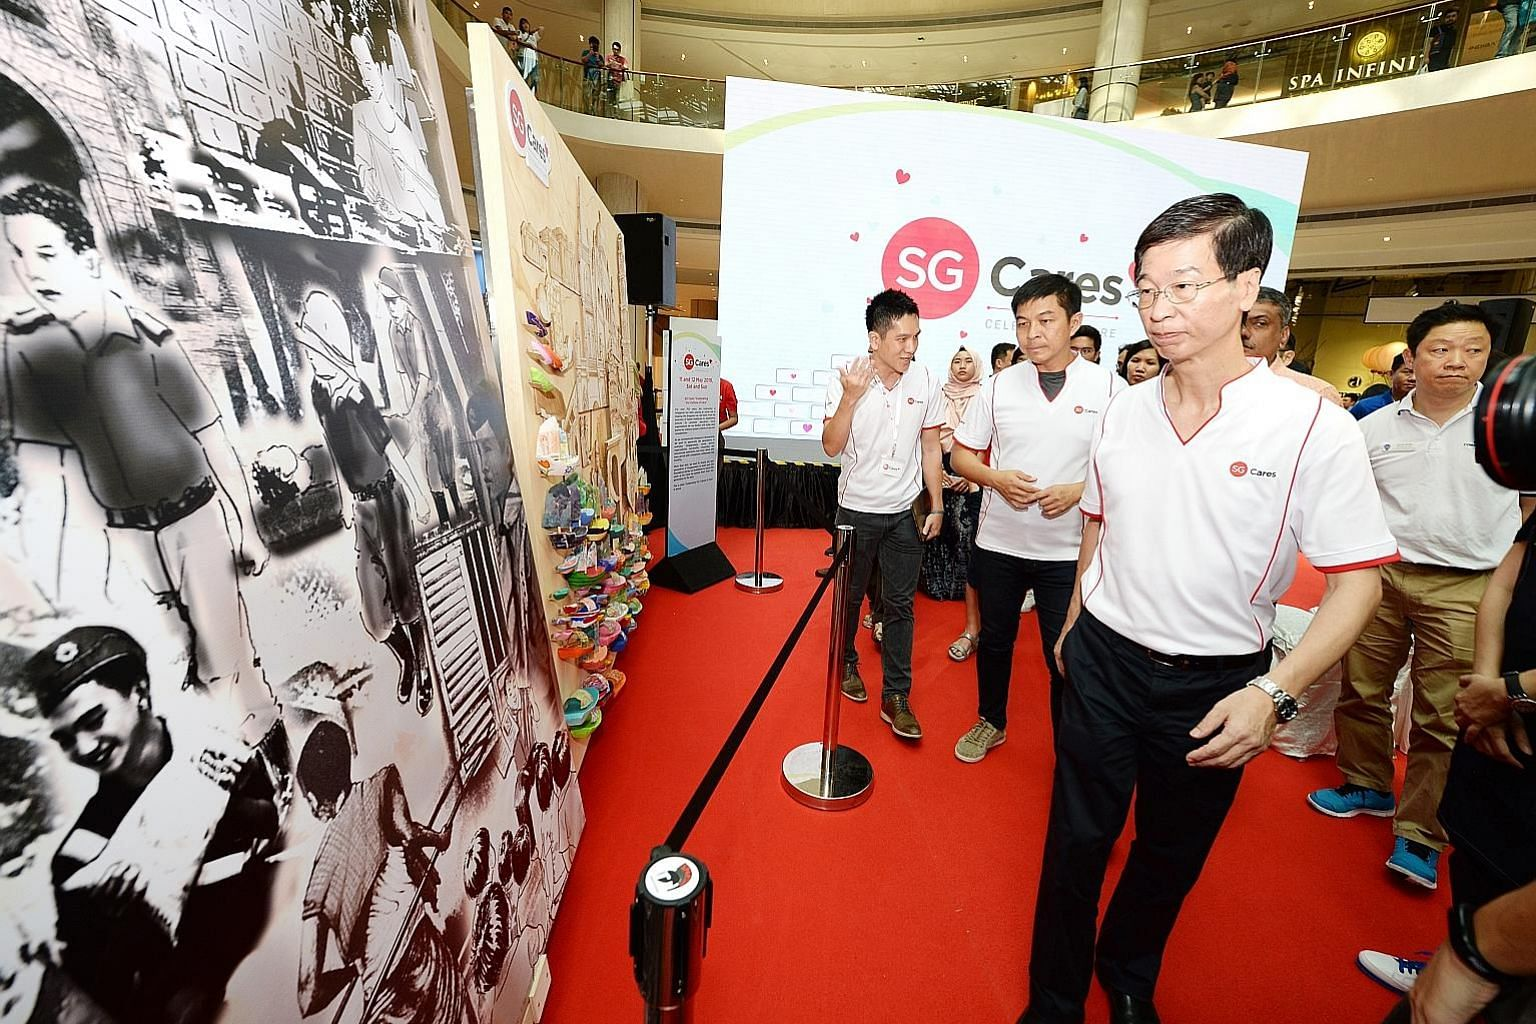 Dr Ang Hak Seng, Deputy Secretary of the Ministry of Culture, Community and Youth (foreground), and Speaker of Parliament Tan Chuan-Jin (middle) viewing a mural project at Suntec City yesterday.